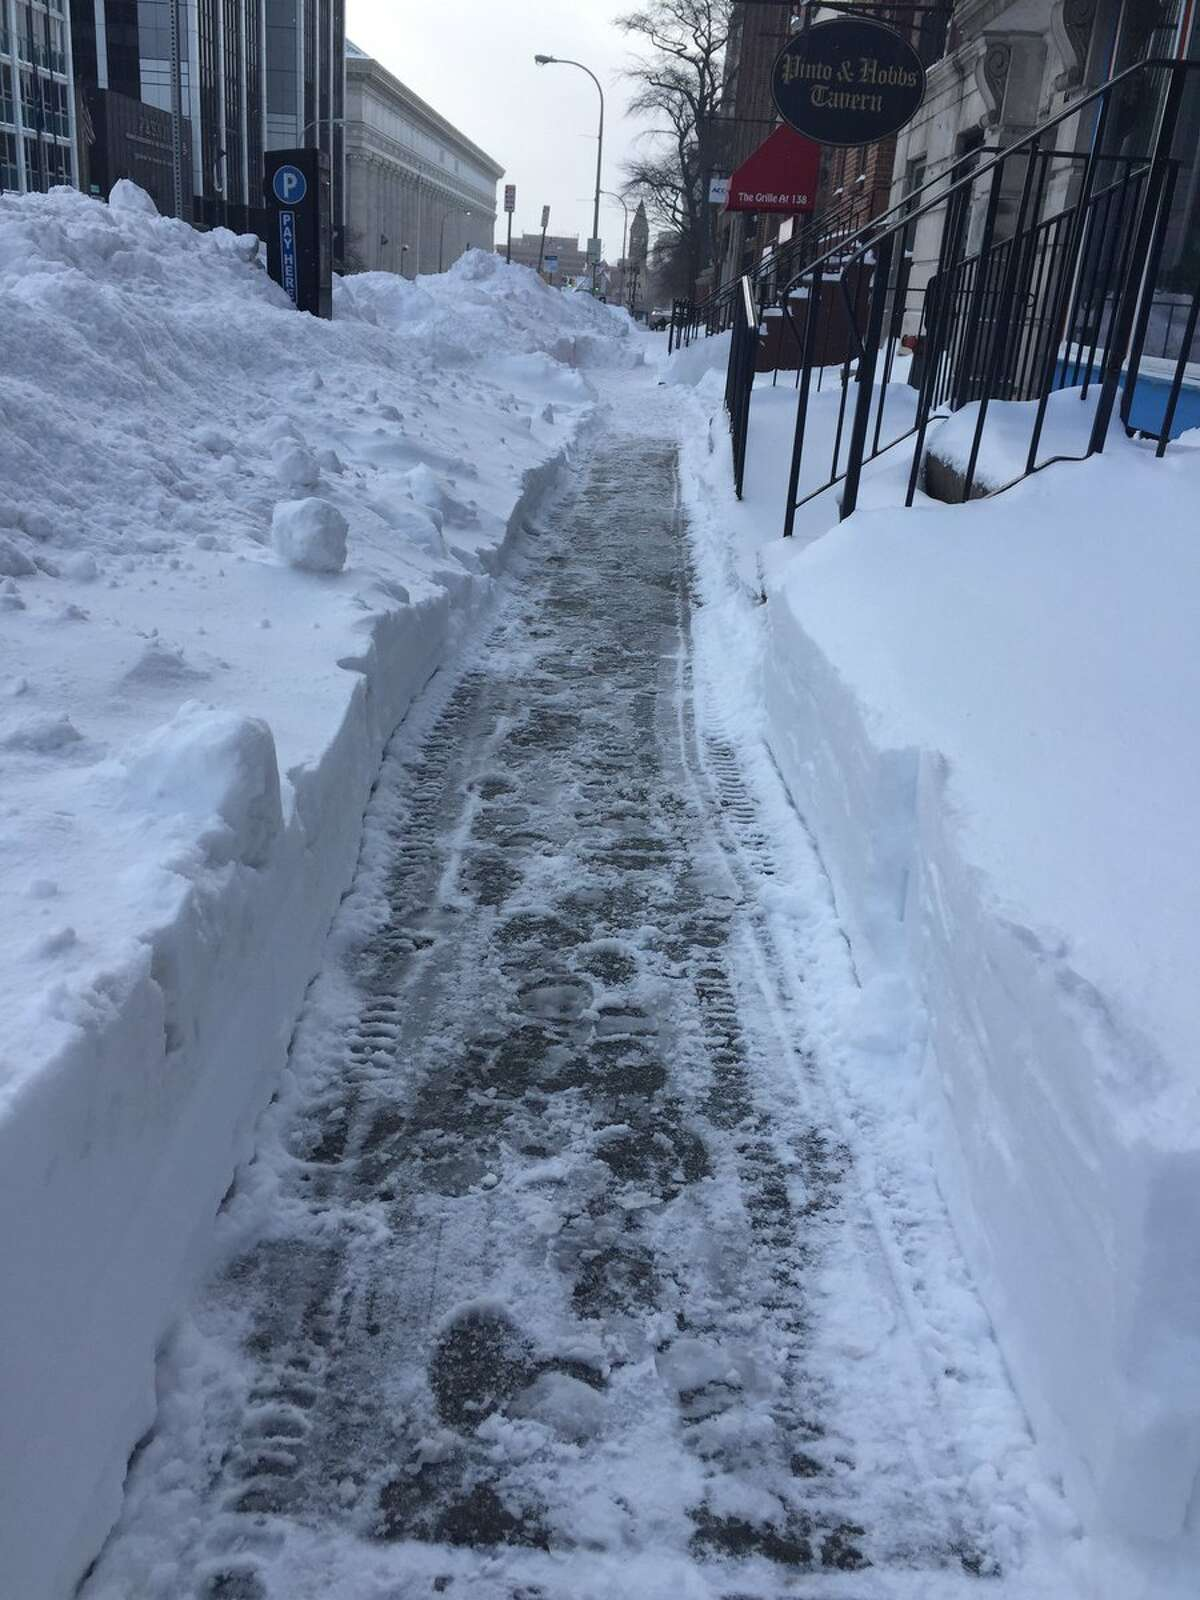 Some cleared sidewalks on Washington Avenue in Albany on Wednesday, March 15, 2017. (Amanda Fries/Times Union)